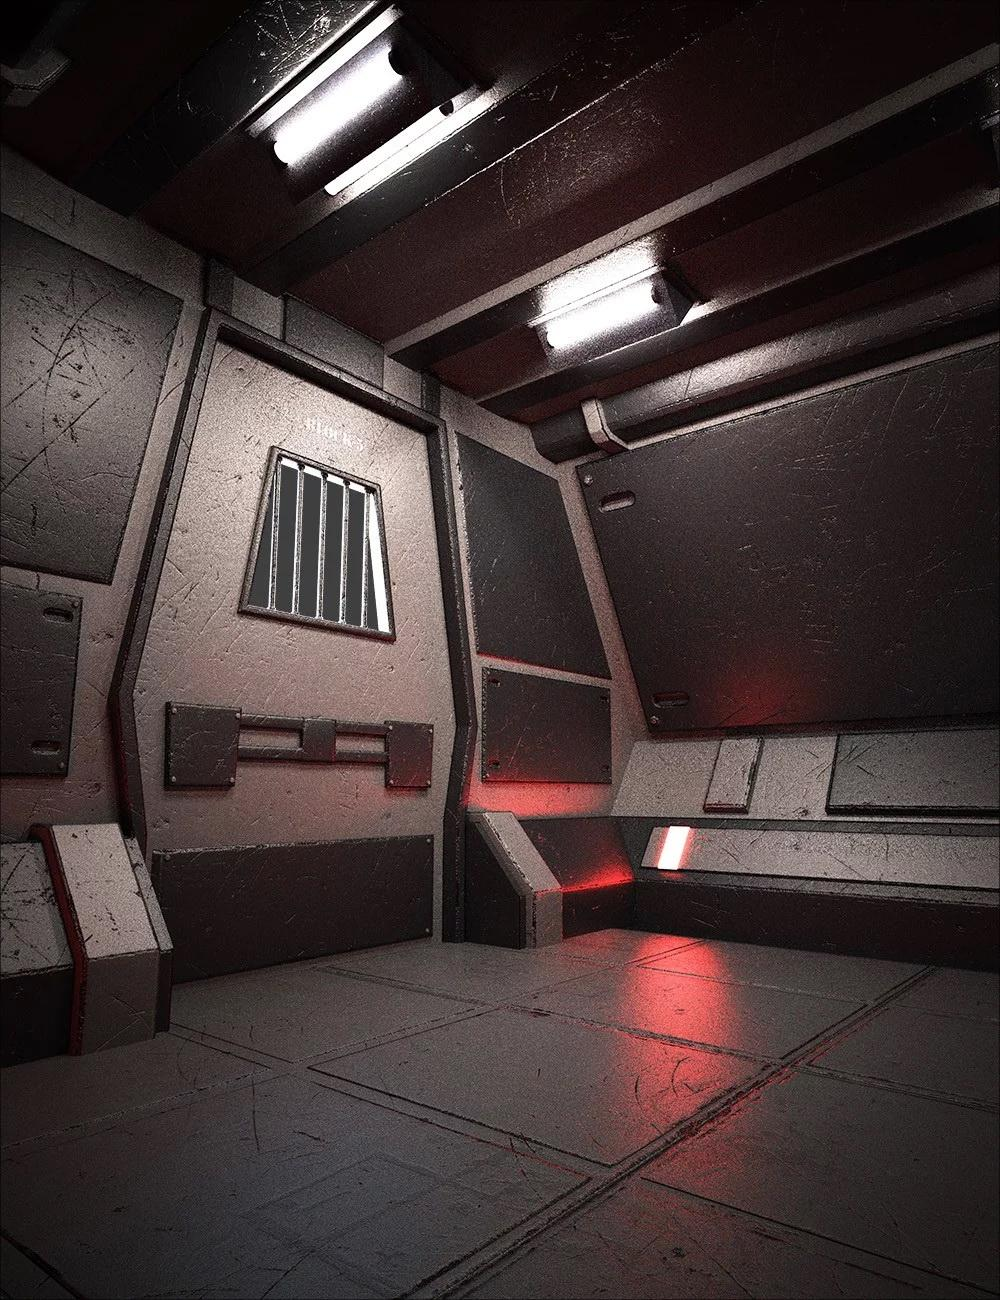 Sci-Fi Confinement Cell